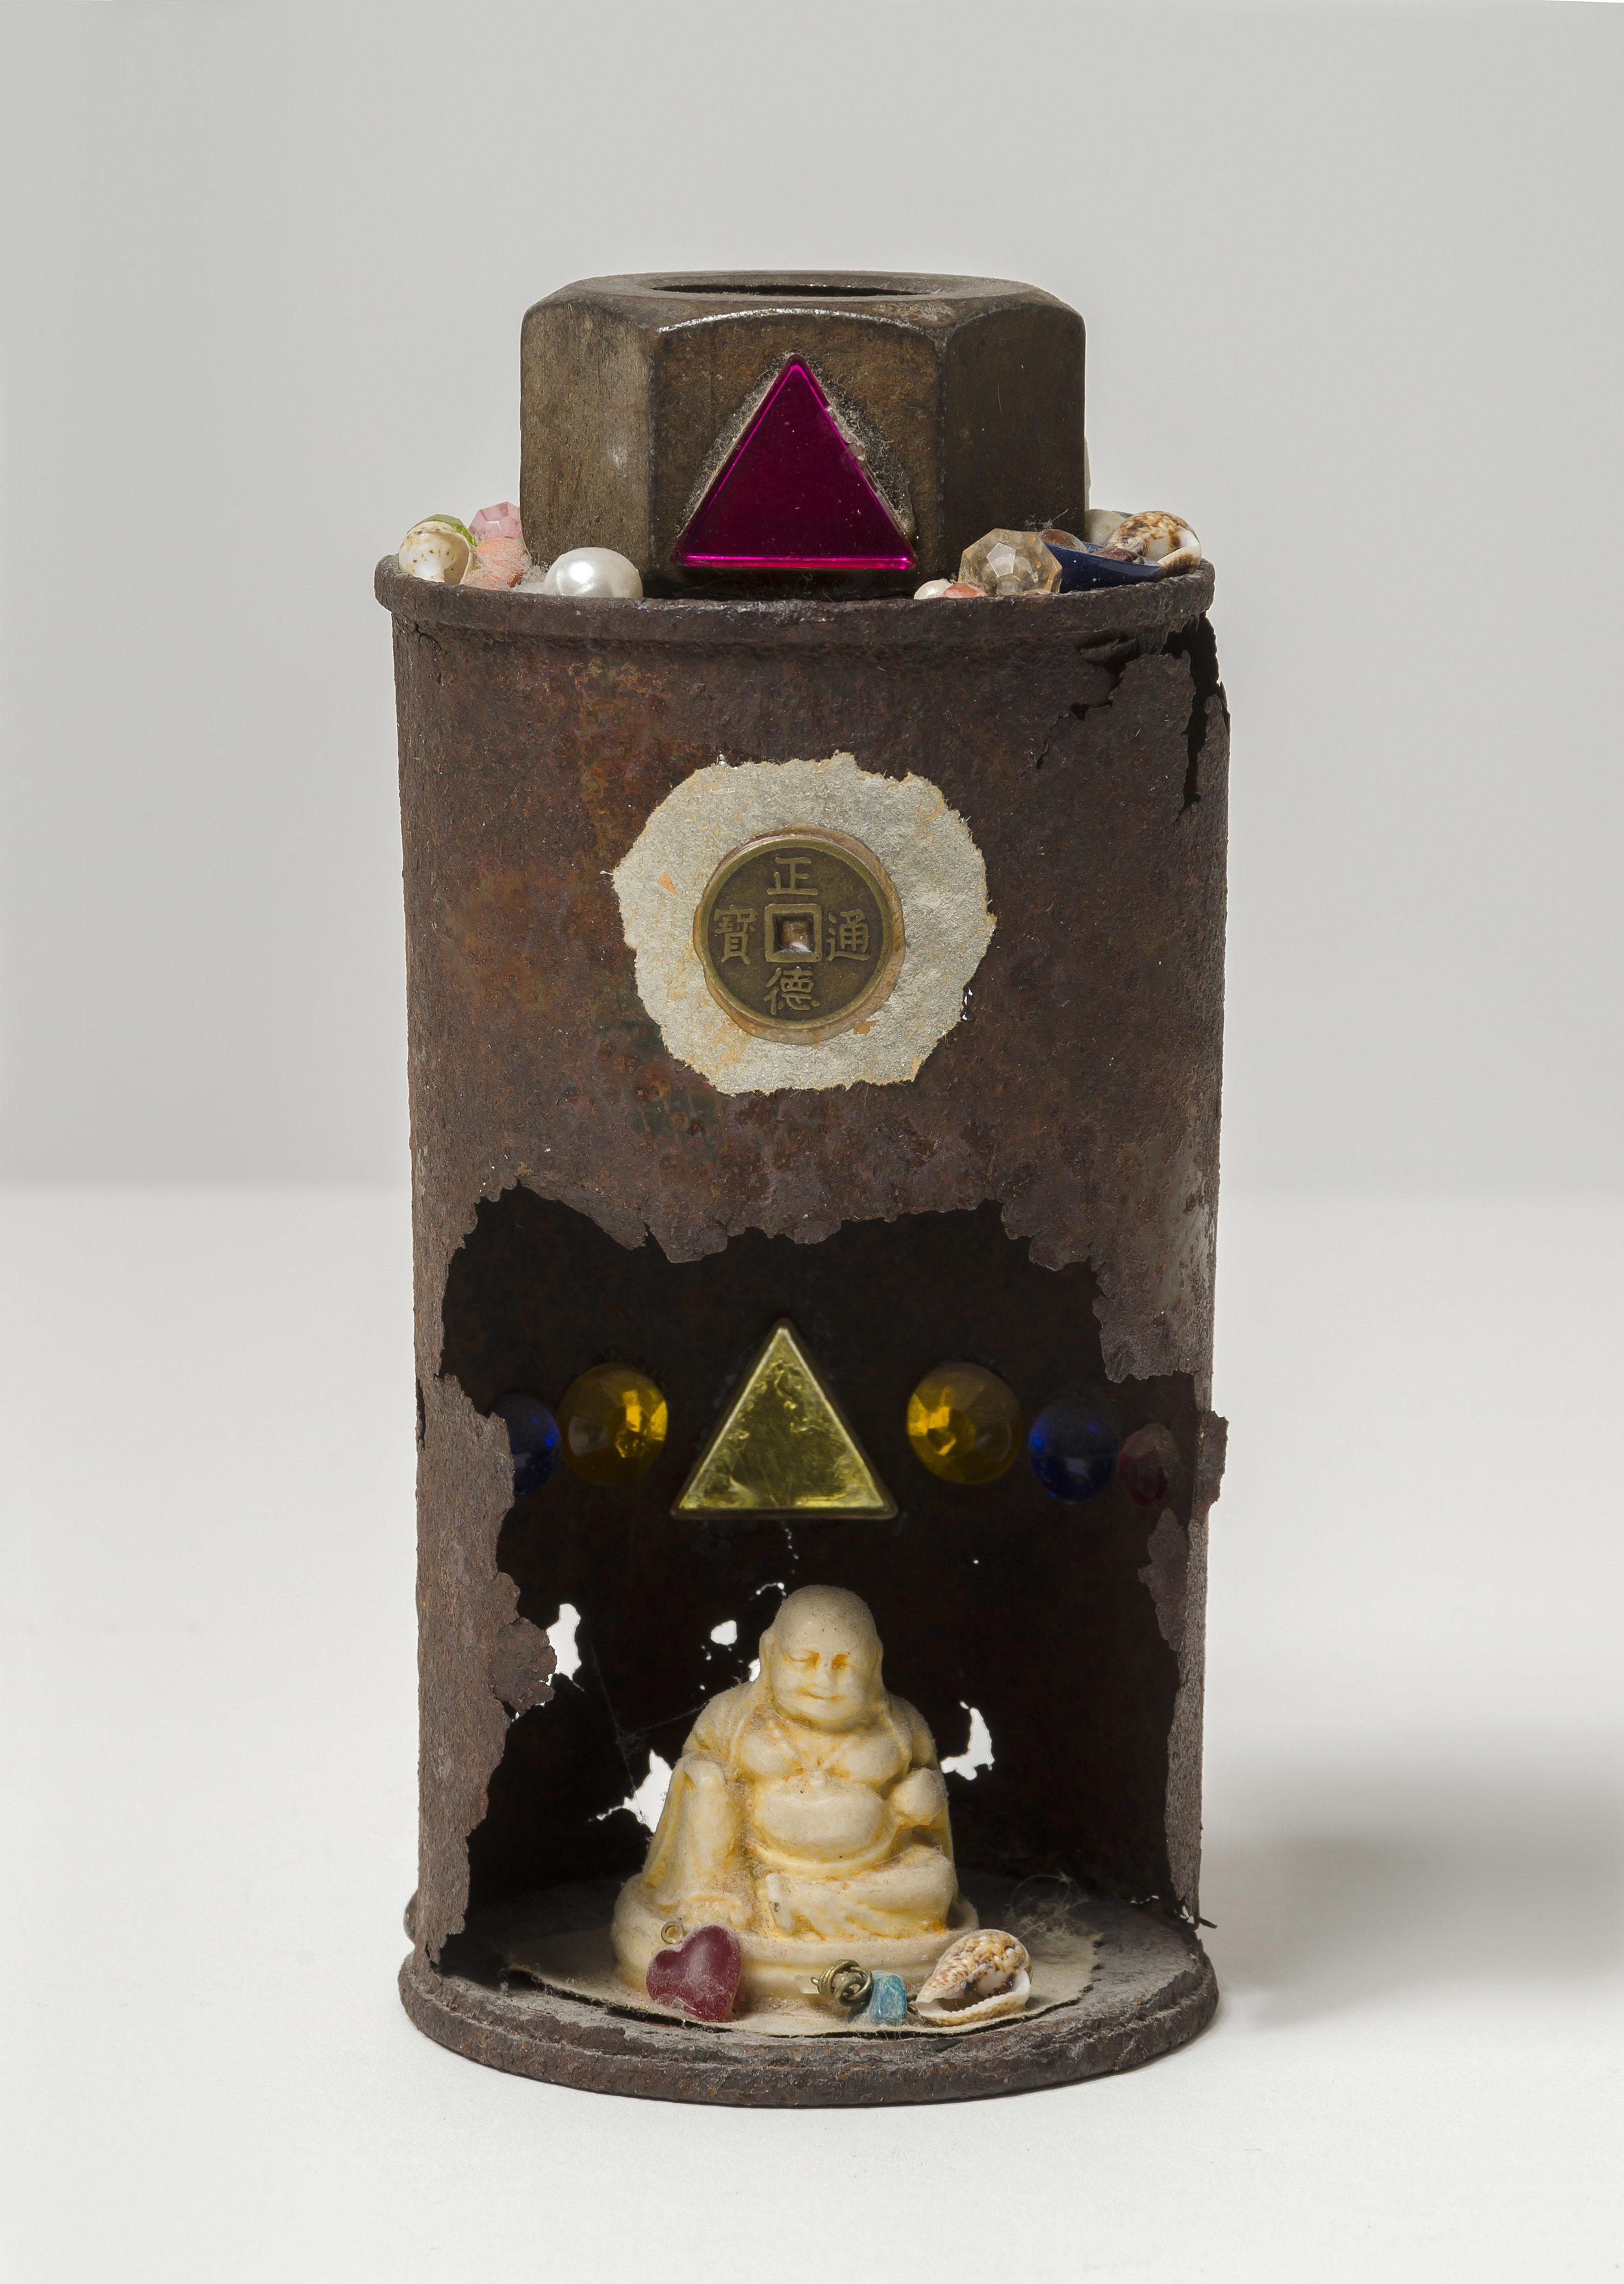 Untitled (Shrine) , c. 1958  mixed media sculpture 3 x 5 3/4 inches; 7.6 x 14.6 centimeters